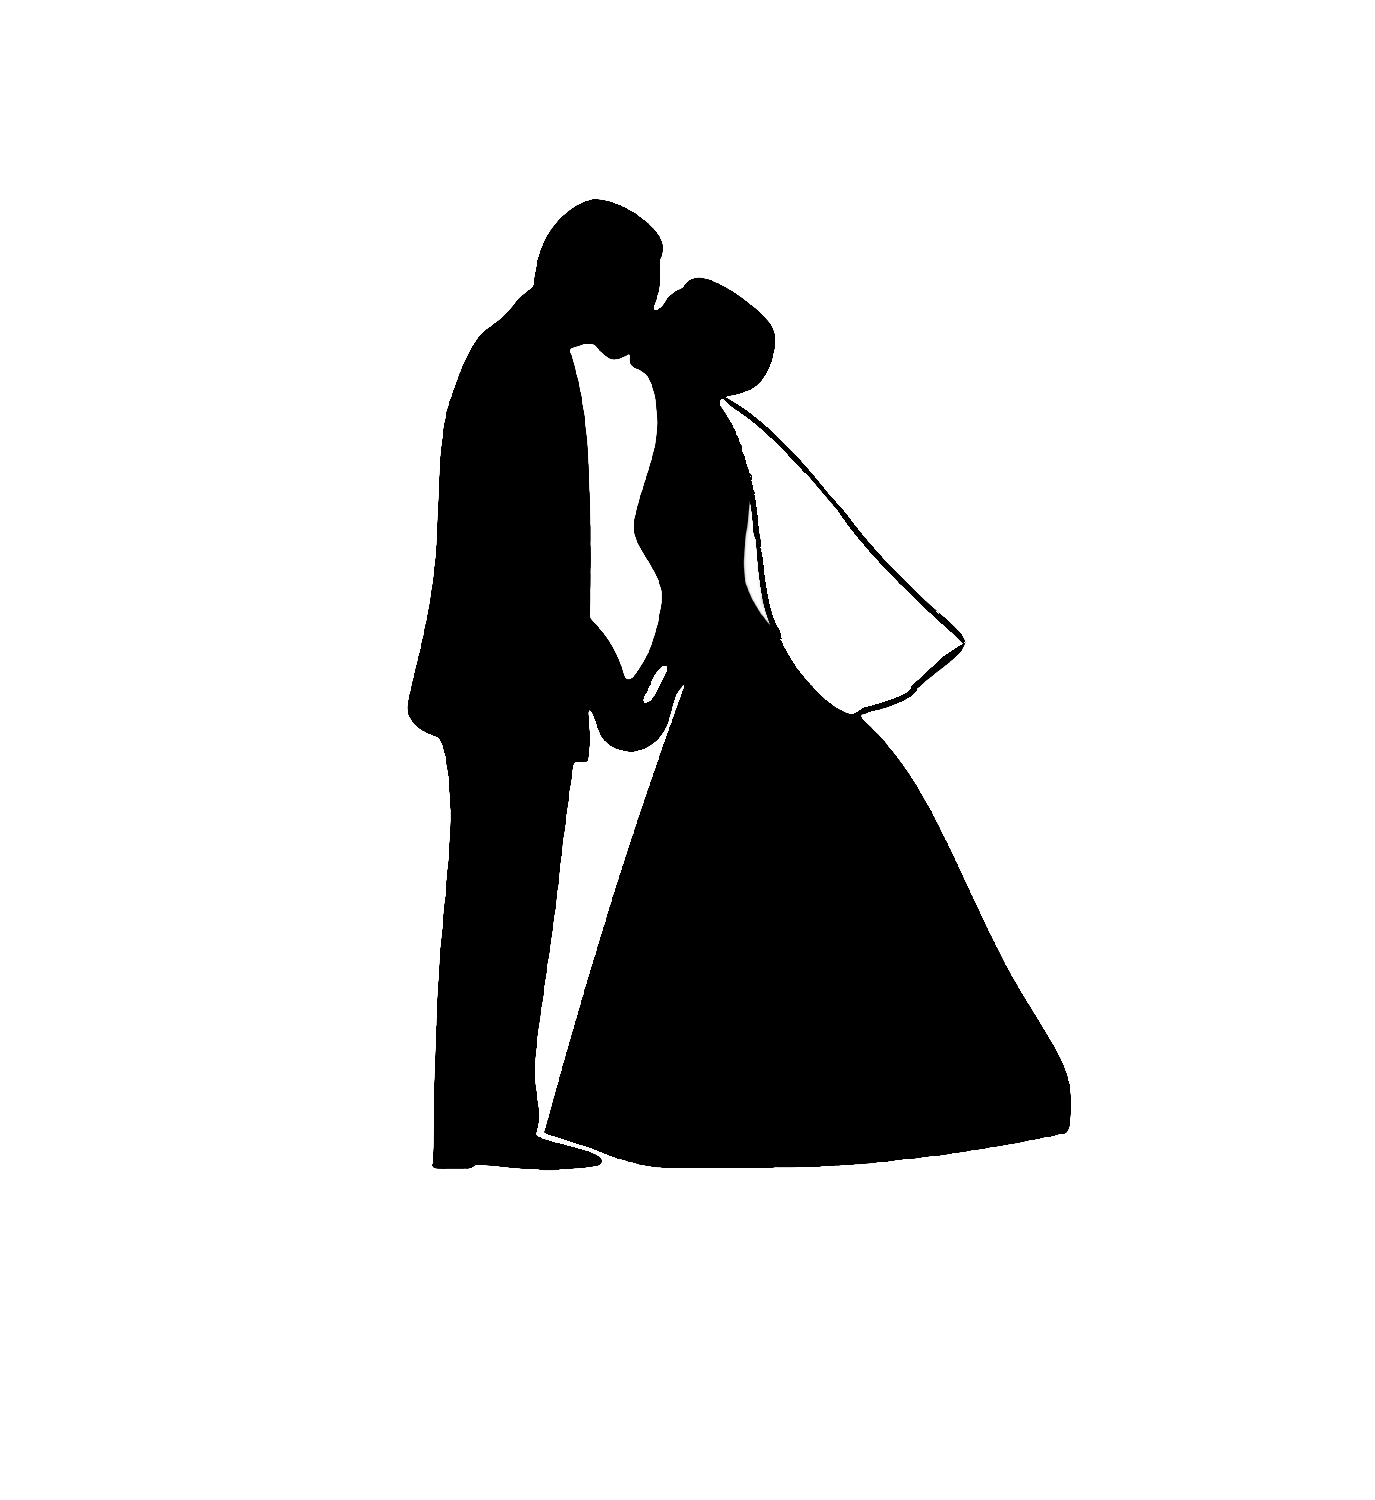 groom silhouette at getdrawings com free for personal use groom rh getdrawings com Bride and Groom Silhouette Outline bride and groom kissing silhouette clip art